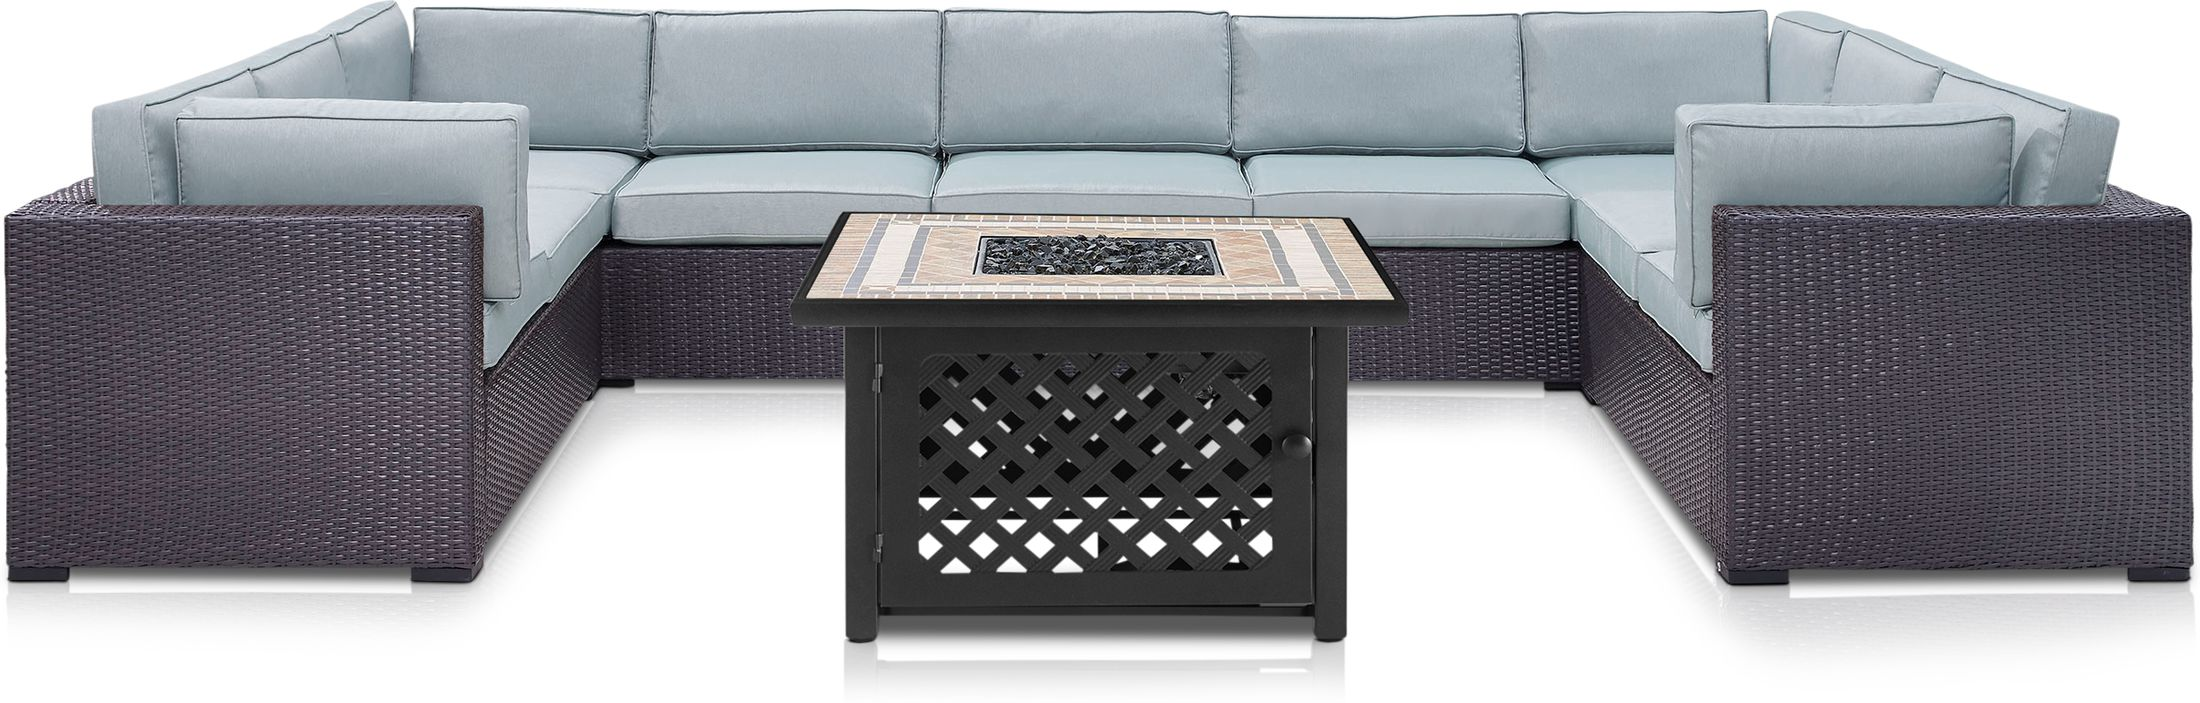 Outdoor Furniture - Isla 5-Piece Outdoor Sectional and Fire Table Set